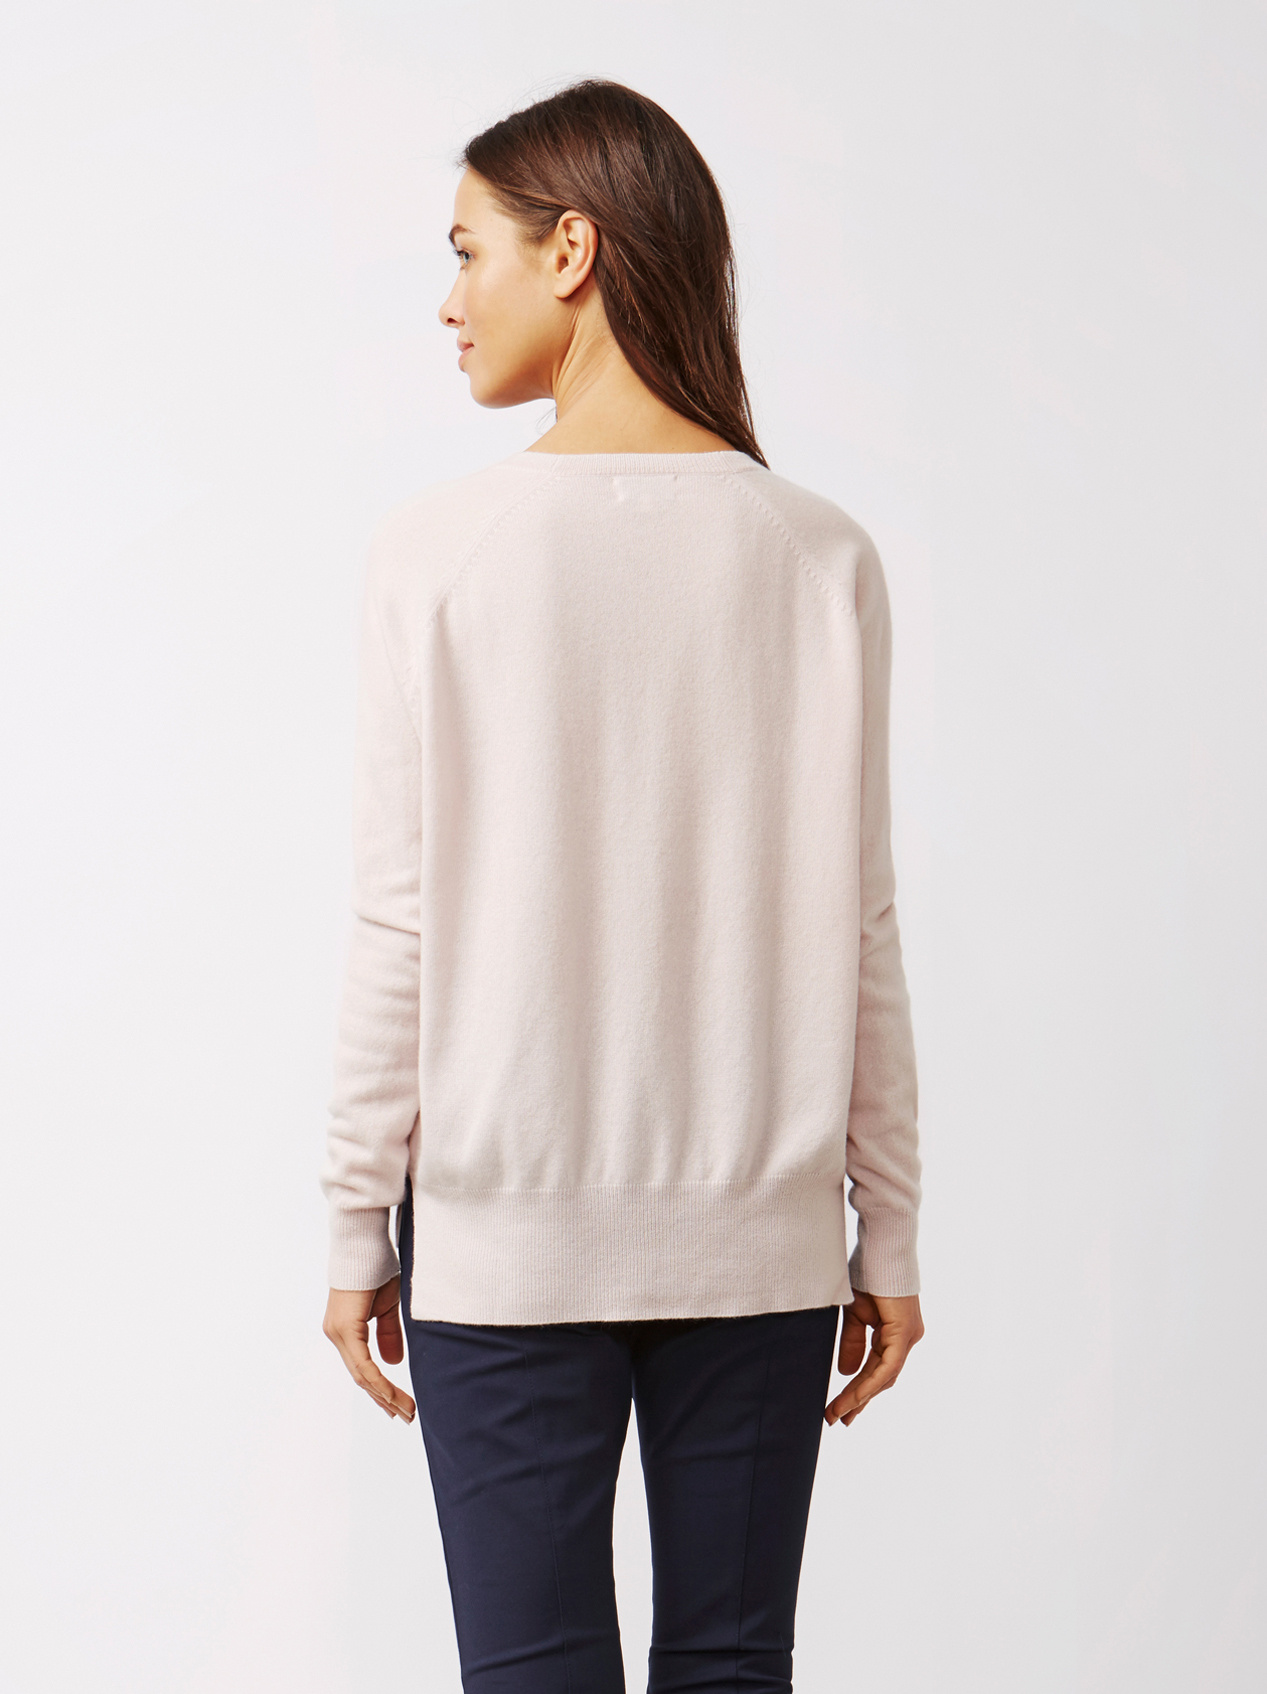 Soft Goat Women's V-Neck Cardigan Marshmallow